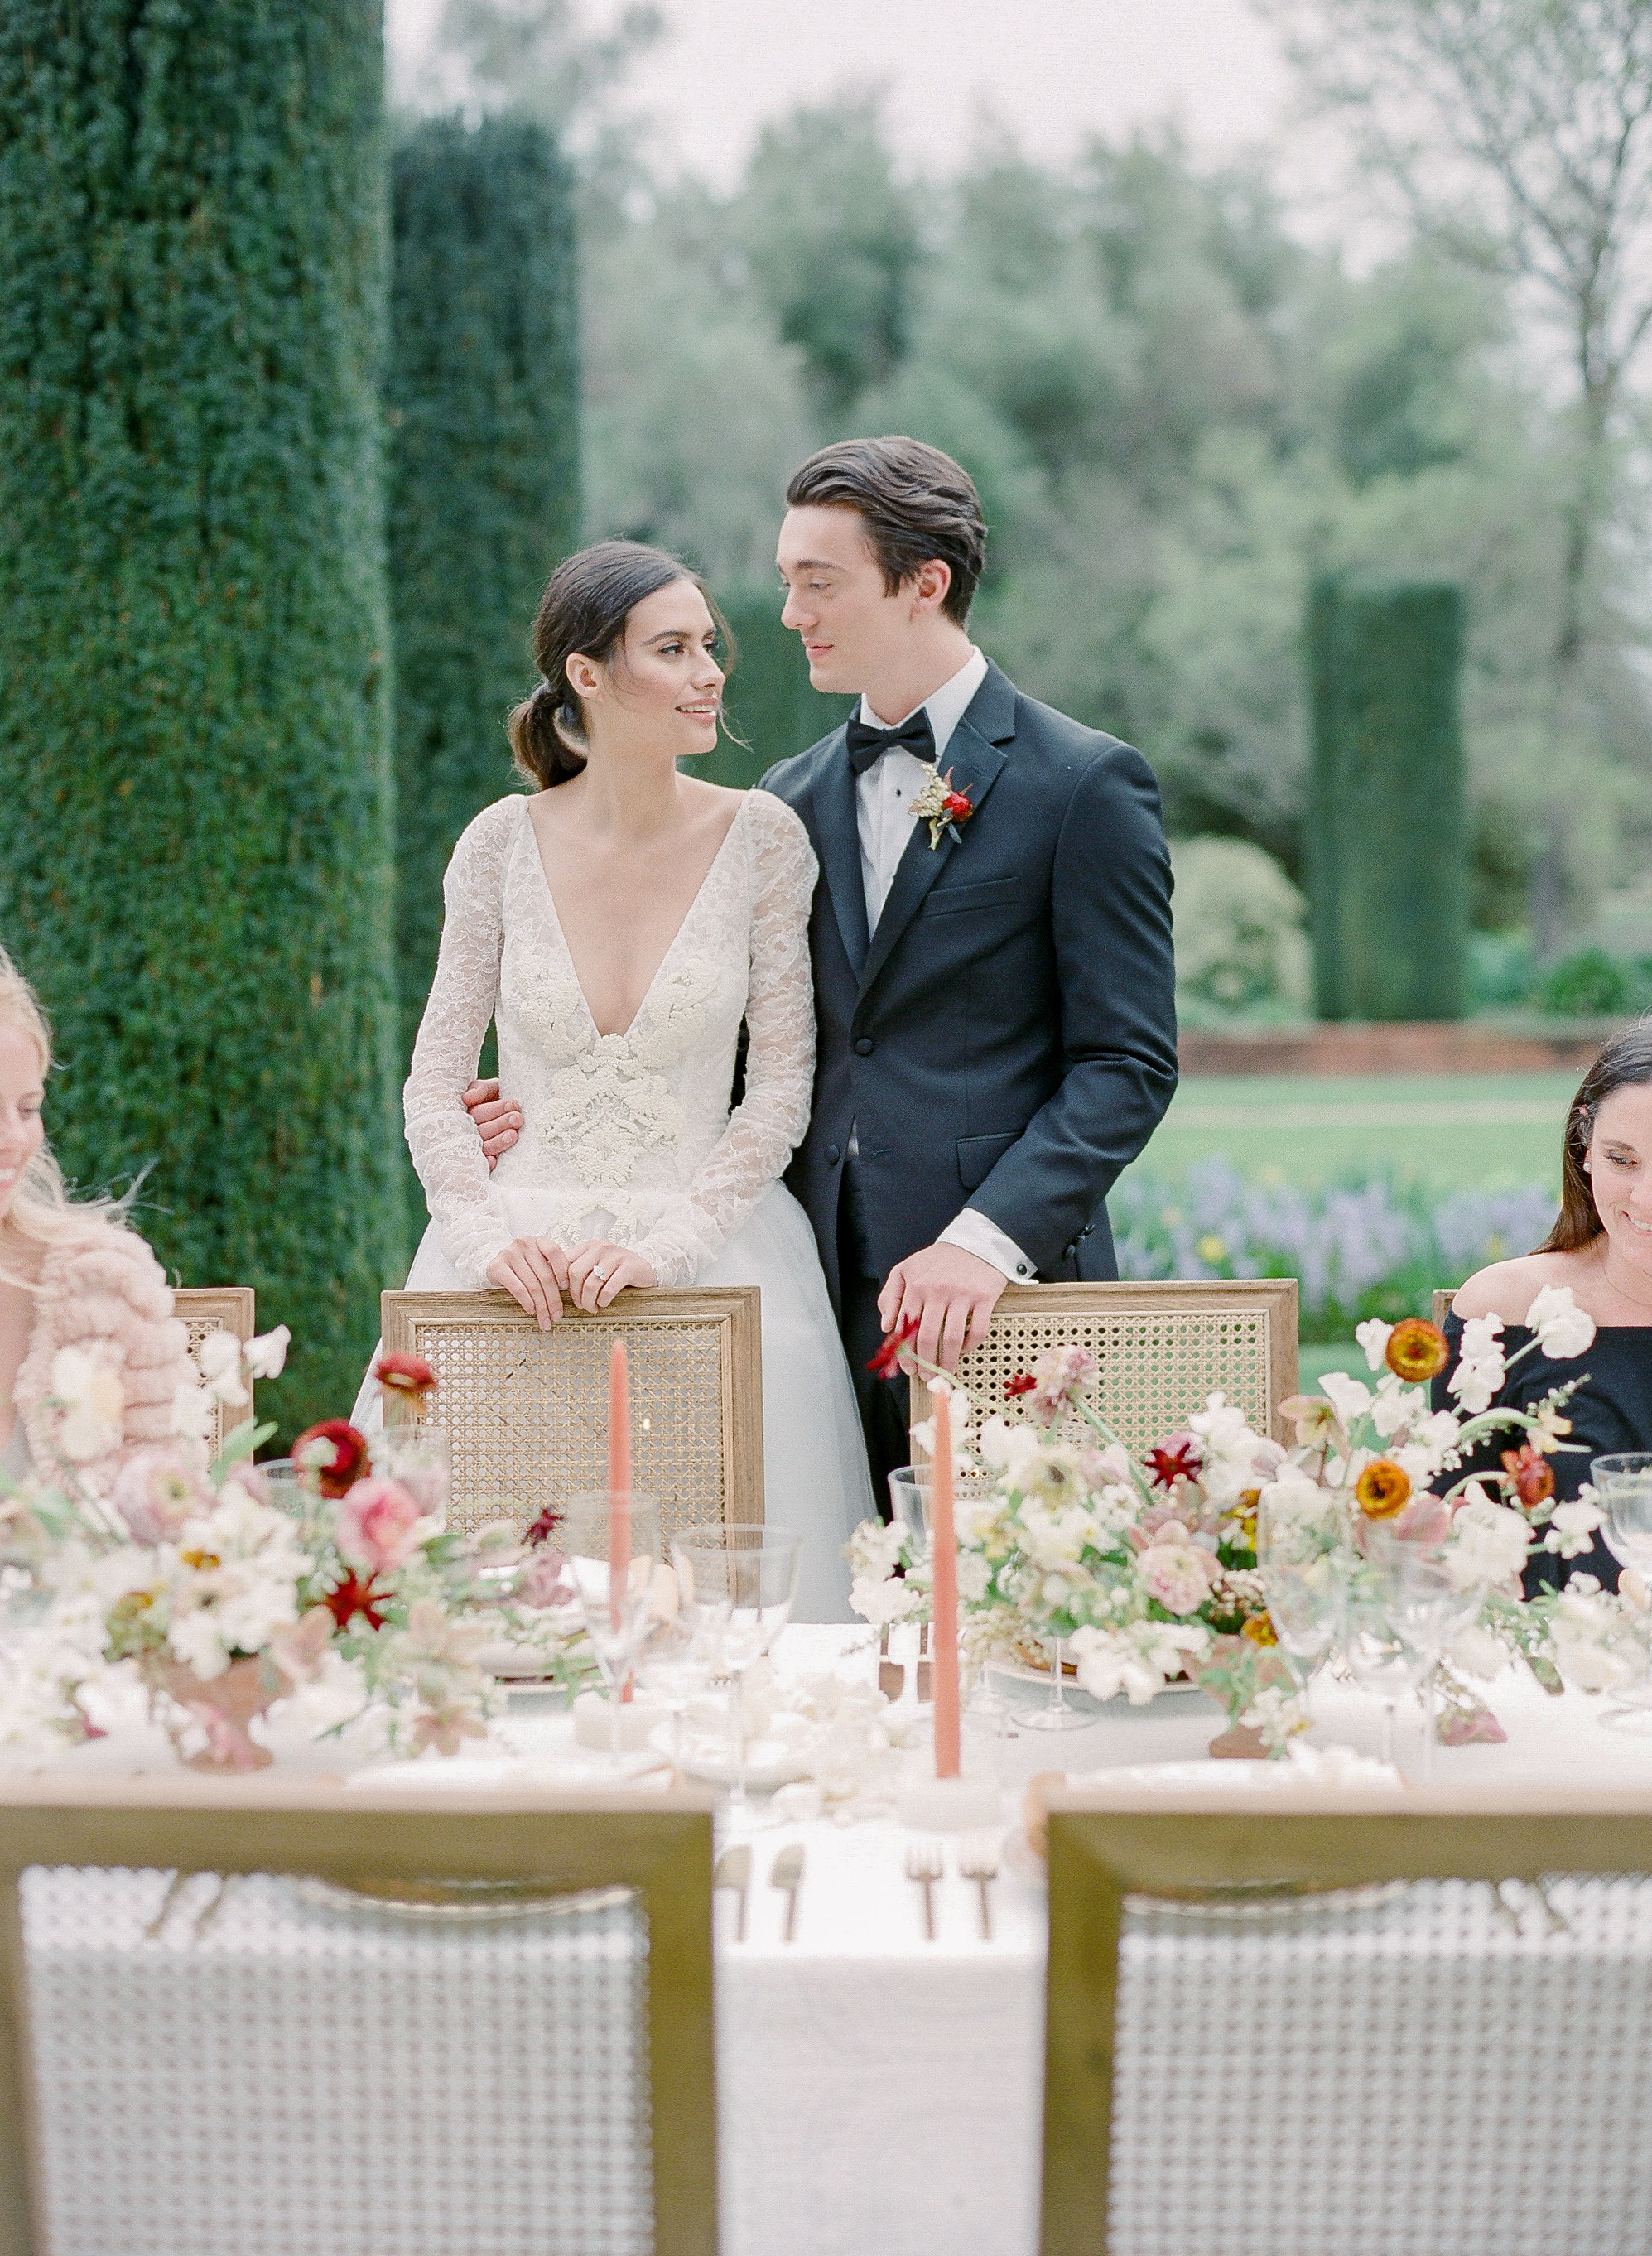 Filoli | Filoli Garden | Wedding | Amanda Crean Photography | Bustle Events | Design House of Miora | Paula Le Duc Fine Catering